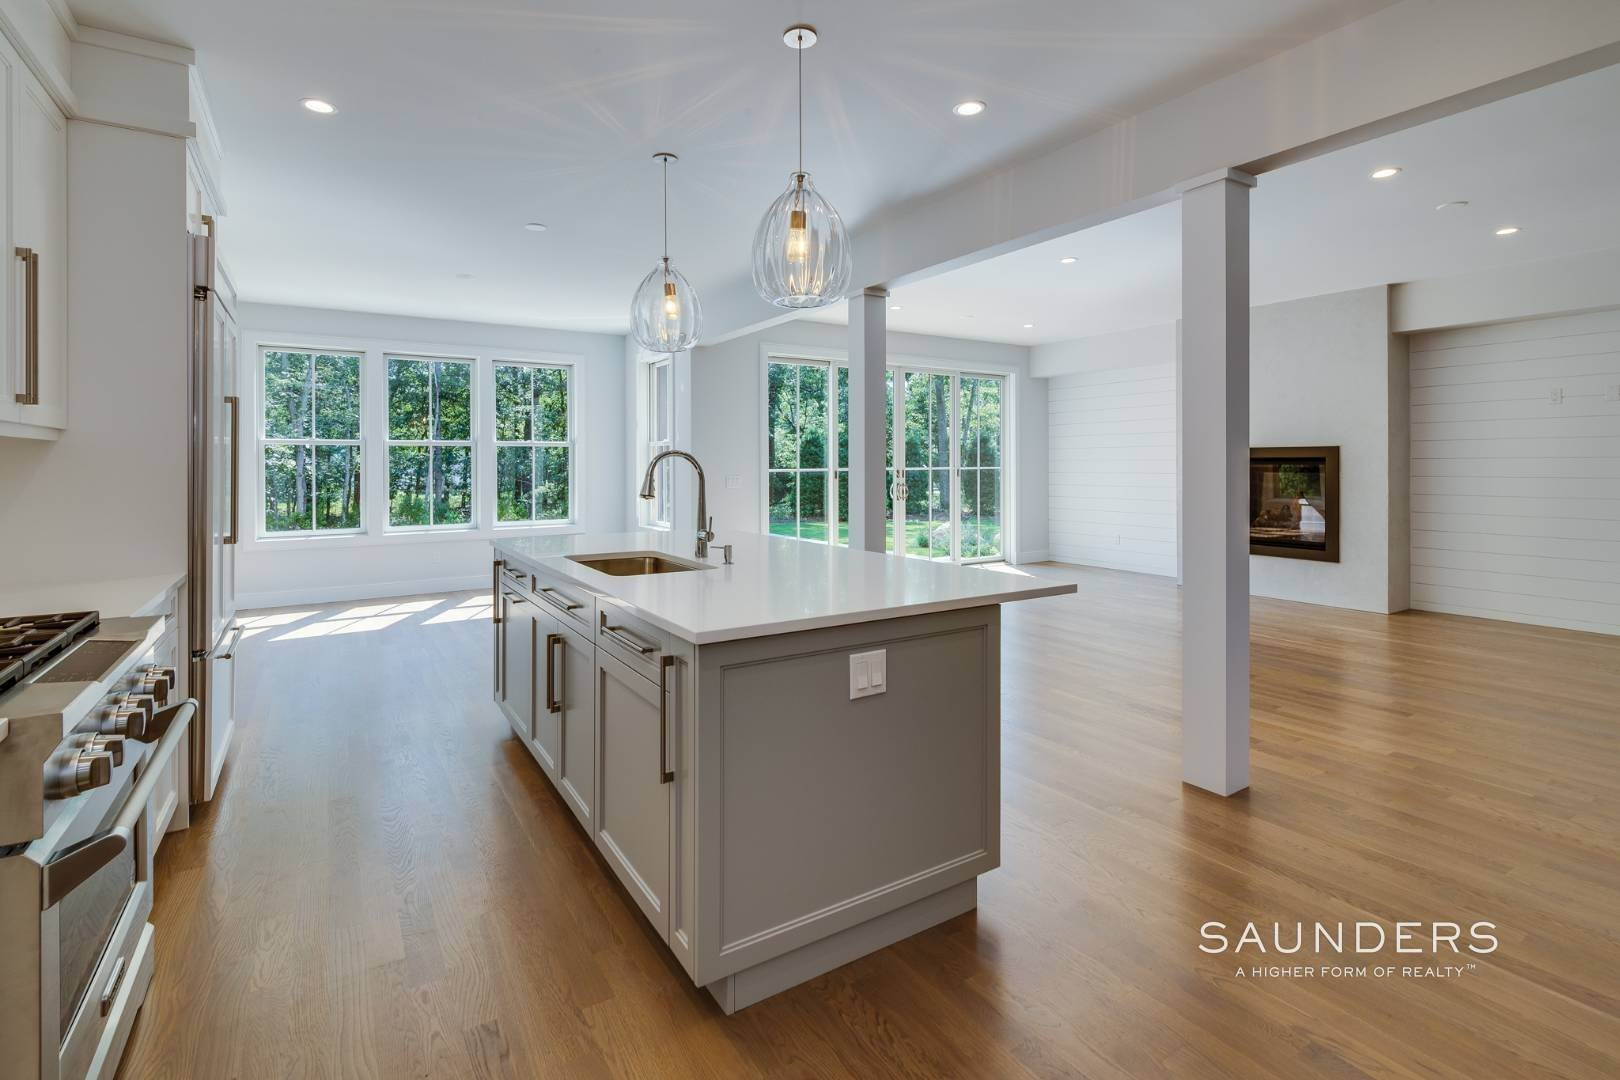 4. Single Family Homes for Sale at Brand New By Forst & Silverblank East Hampton, East Hampton Town, NY 11937